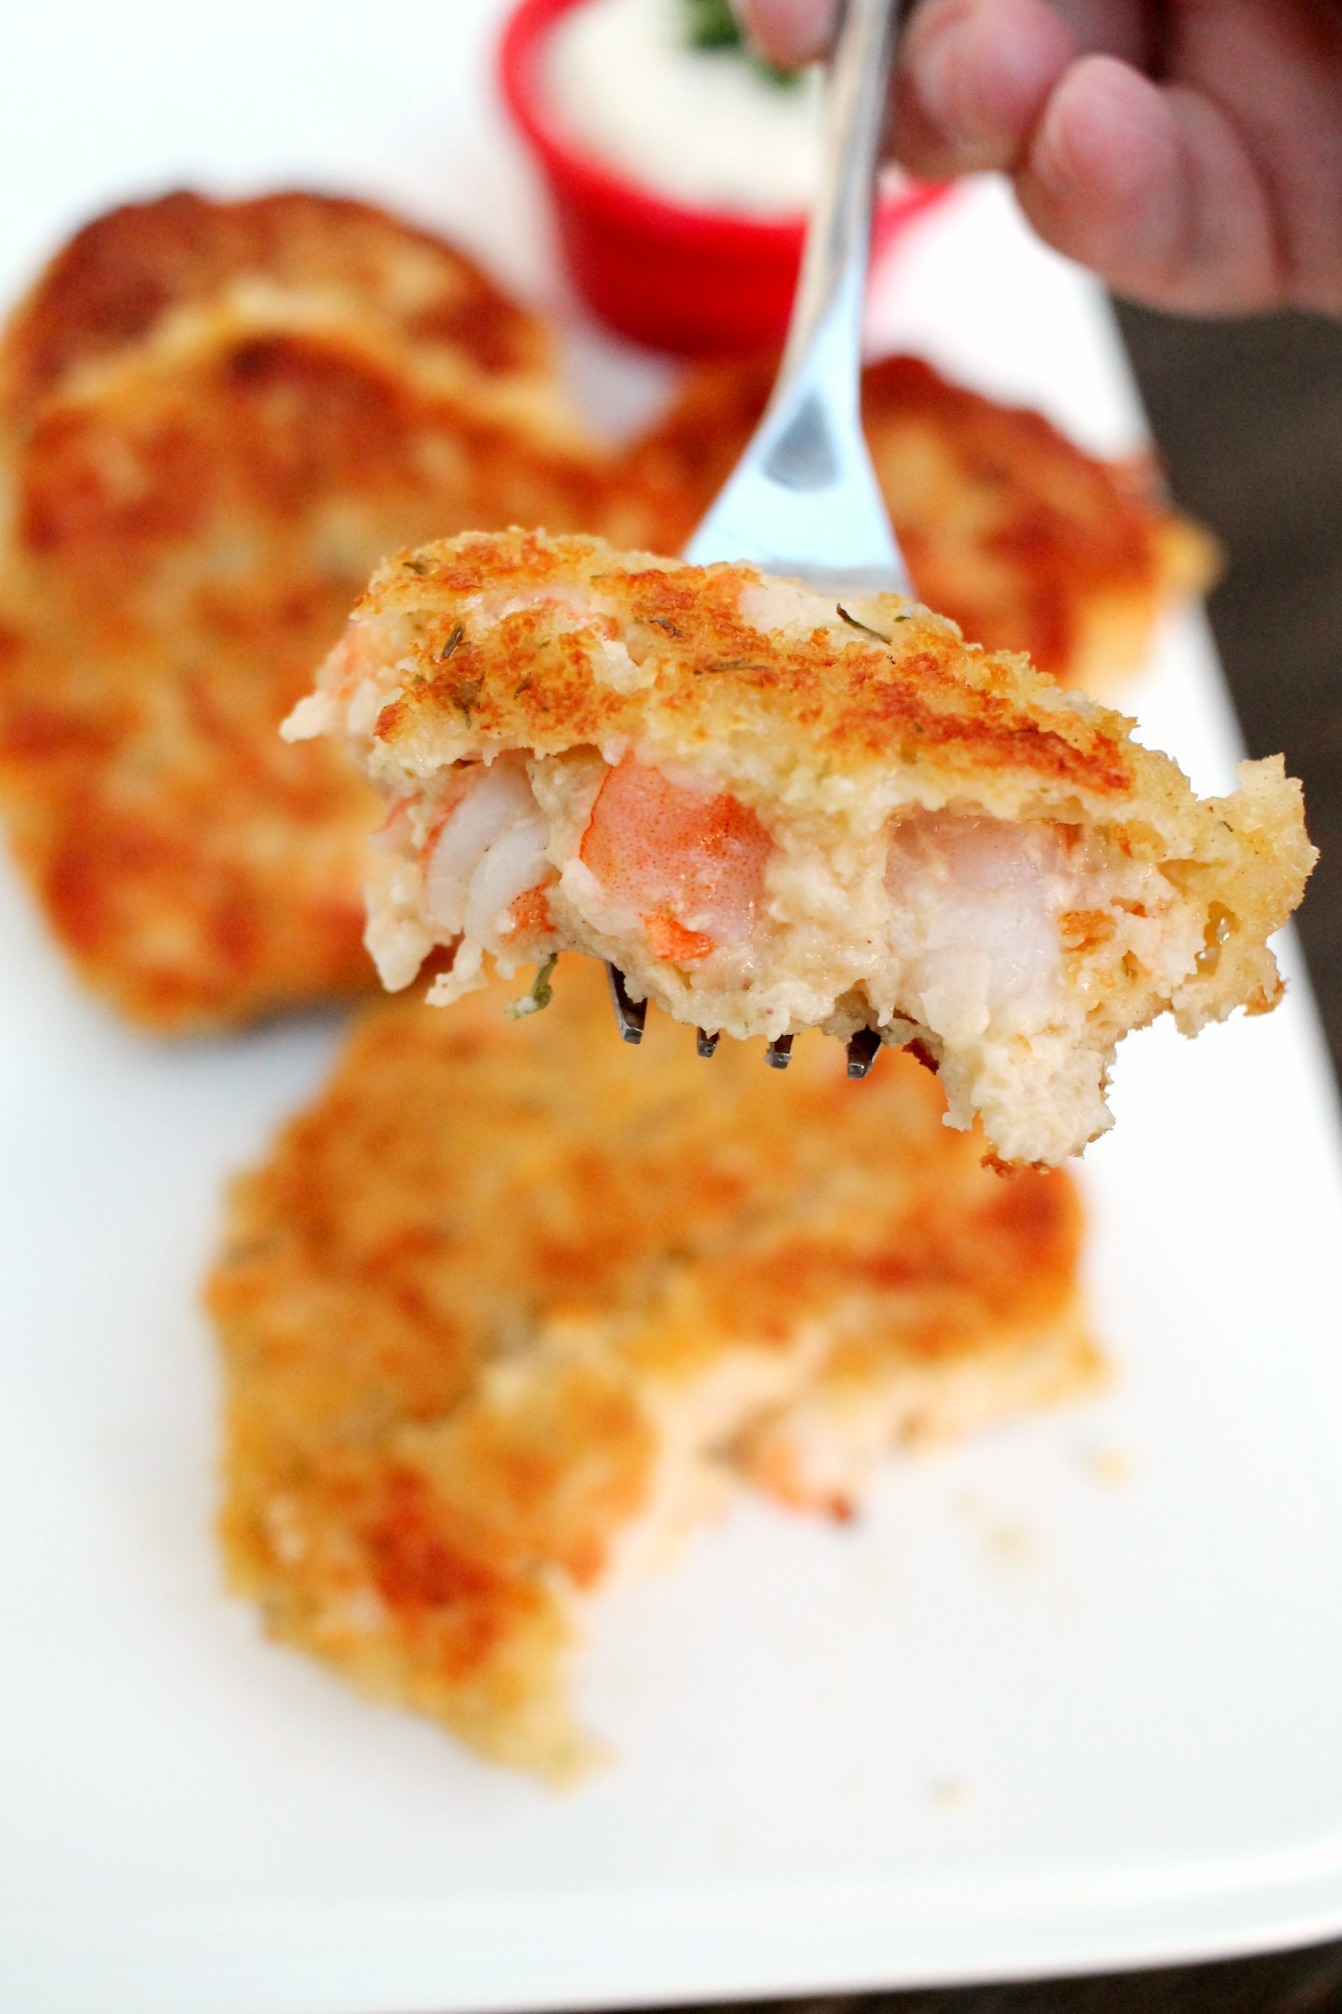 a fork holding a bite of a shrimp cake with whole shrimp cakes in the background